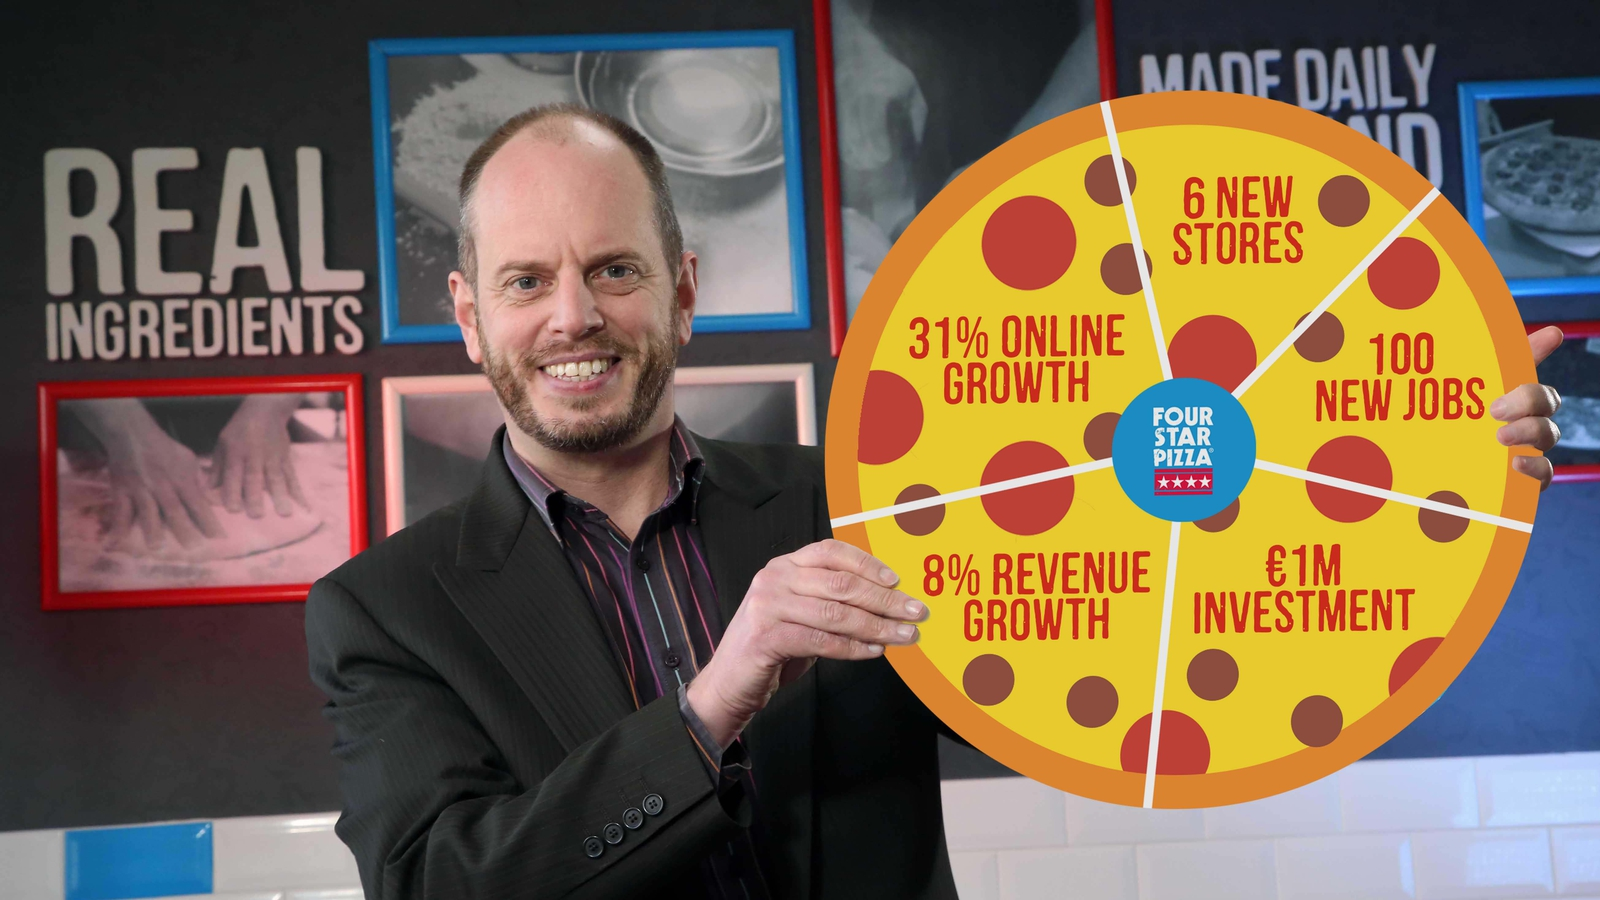 Four Star Pizzas Online Sales Jump 31 Higher